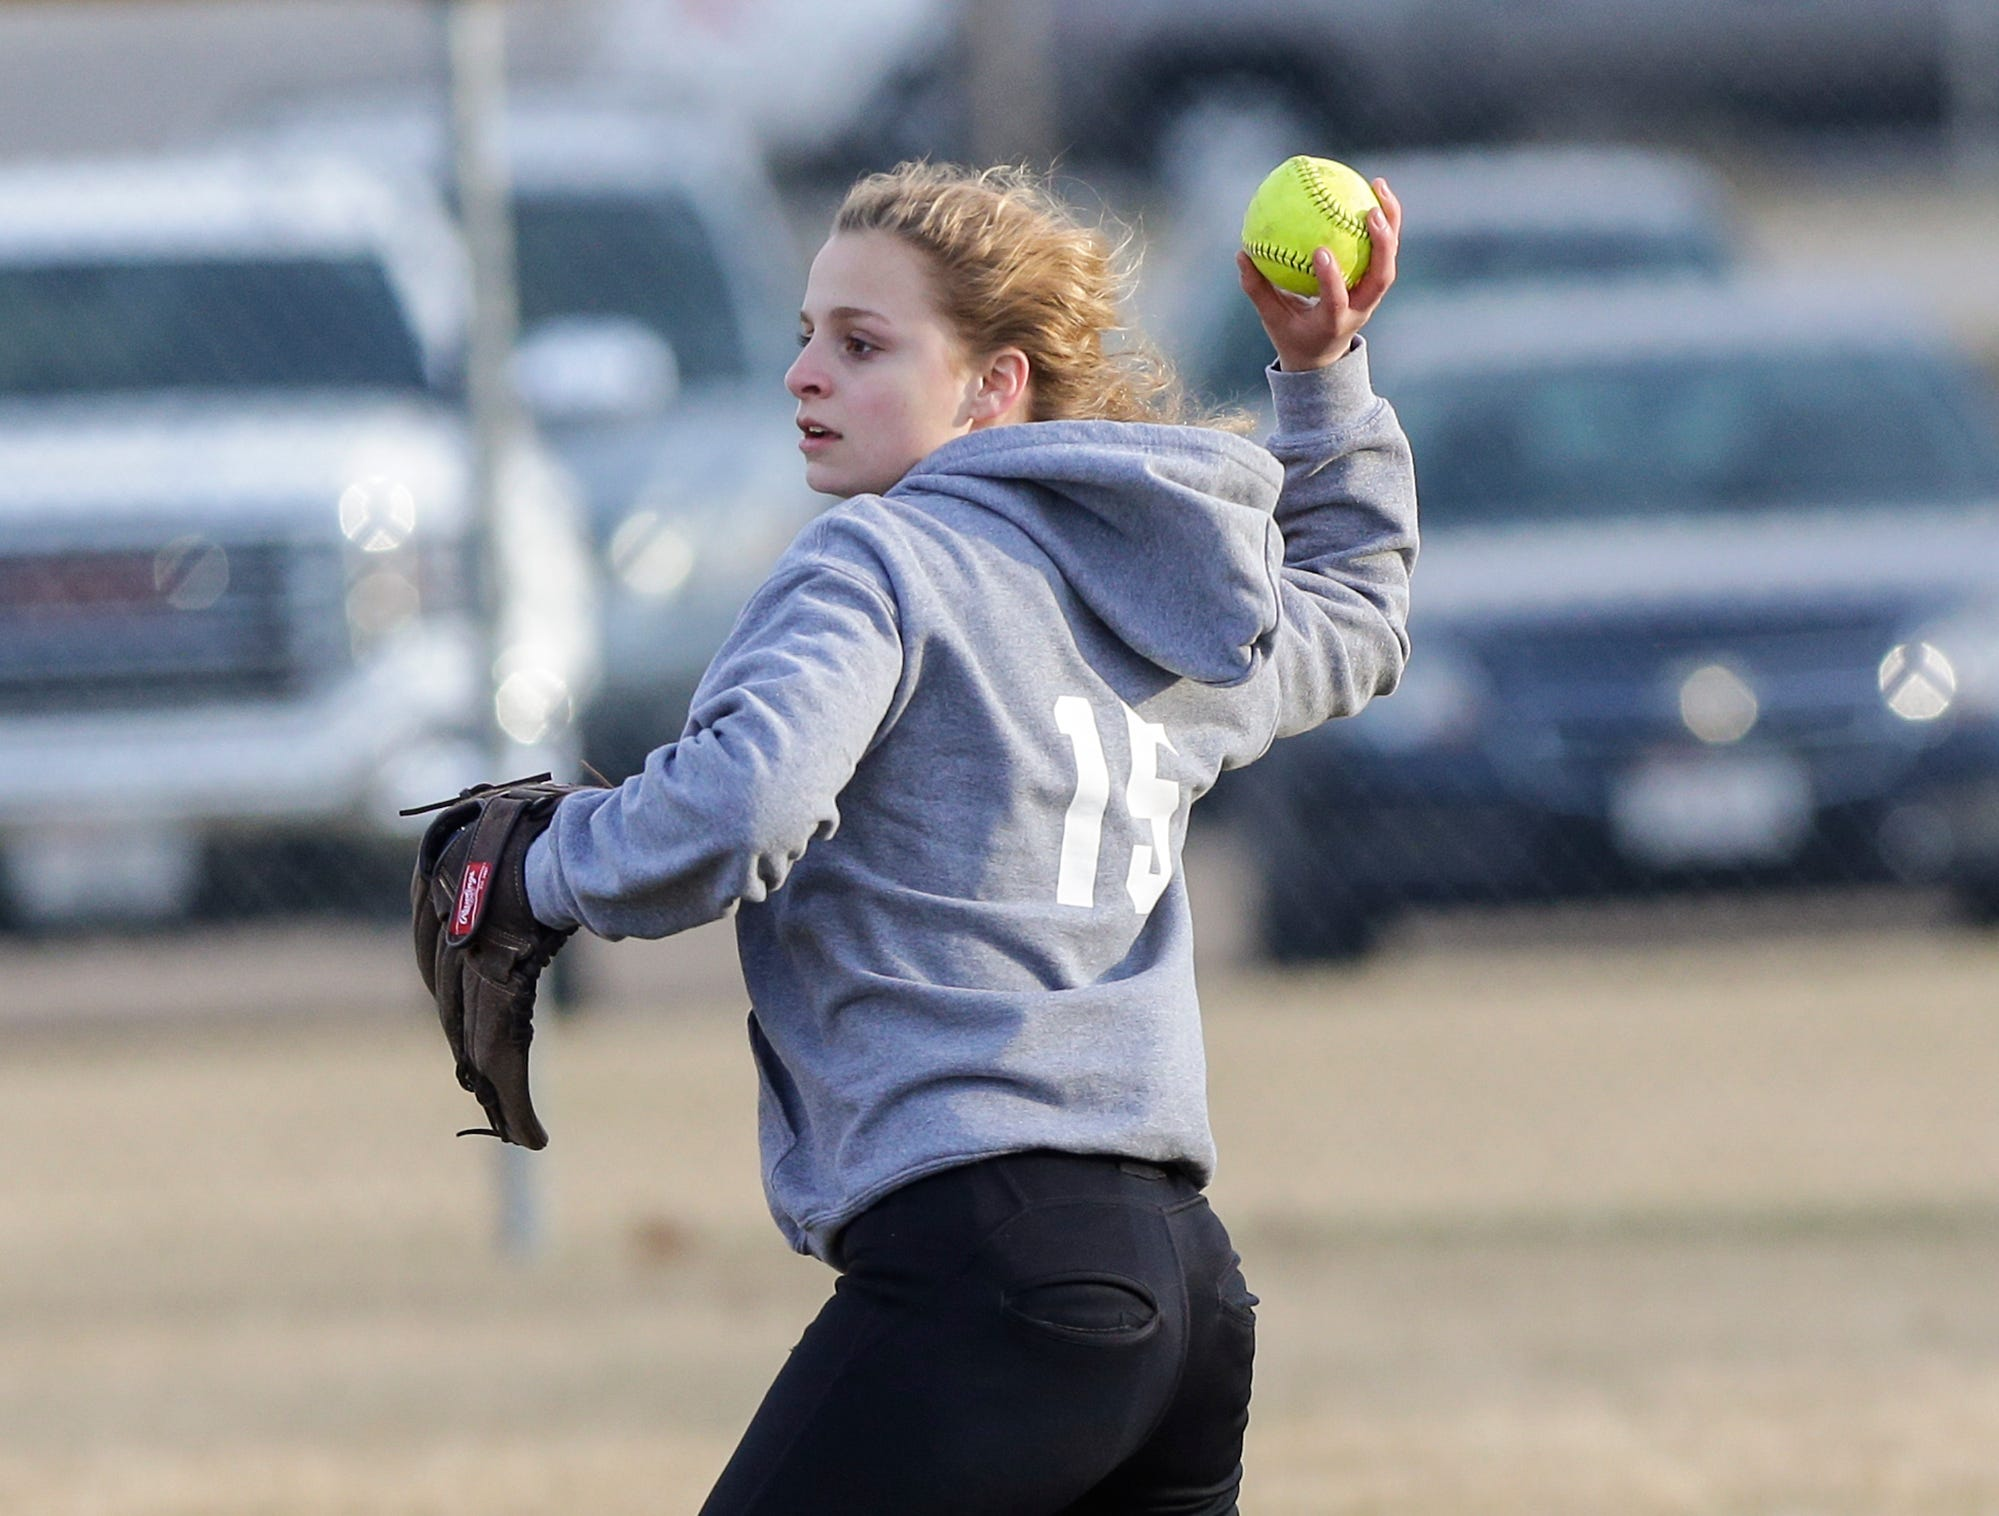 Winnebago Lutheran Academy's softball's Maddie Loehr fields a ball against Laconia High School April 9, 2019 during their game in Fond du Lac, Wis. Laconia won the game 25-9. Doug Raflik/USA TODAY NETWORK-Wisconsin